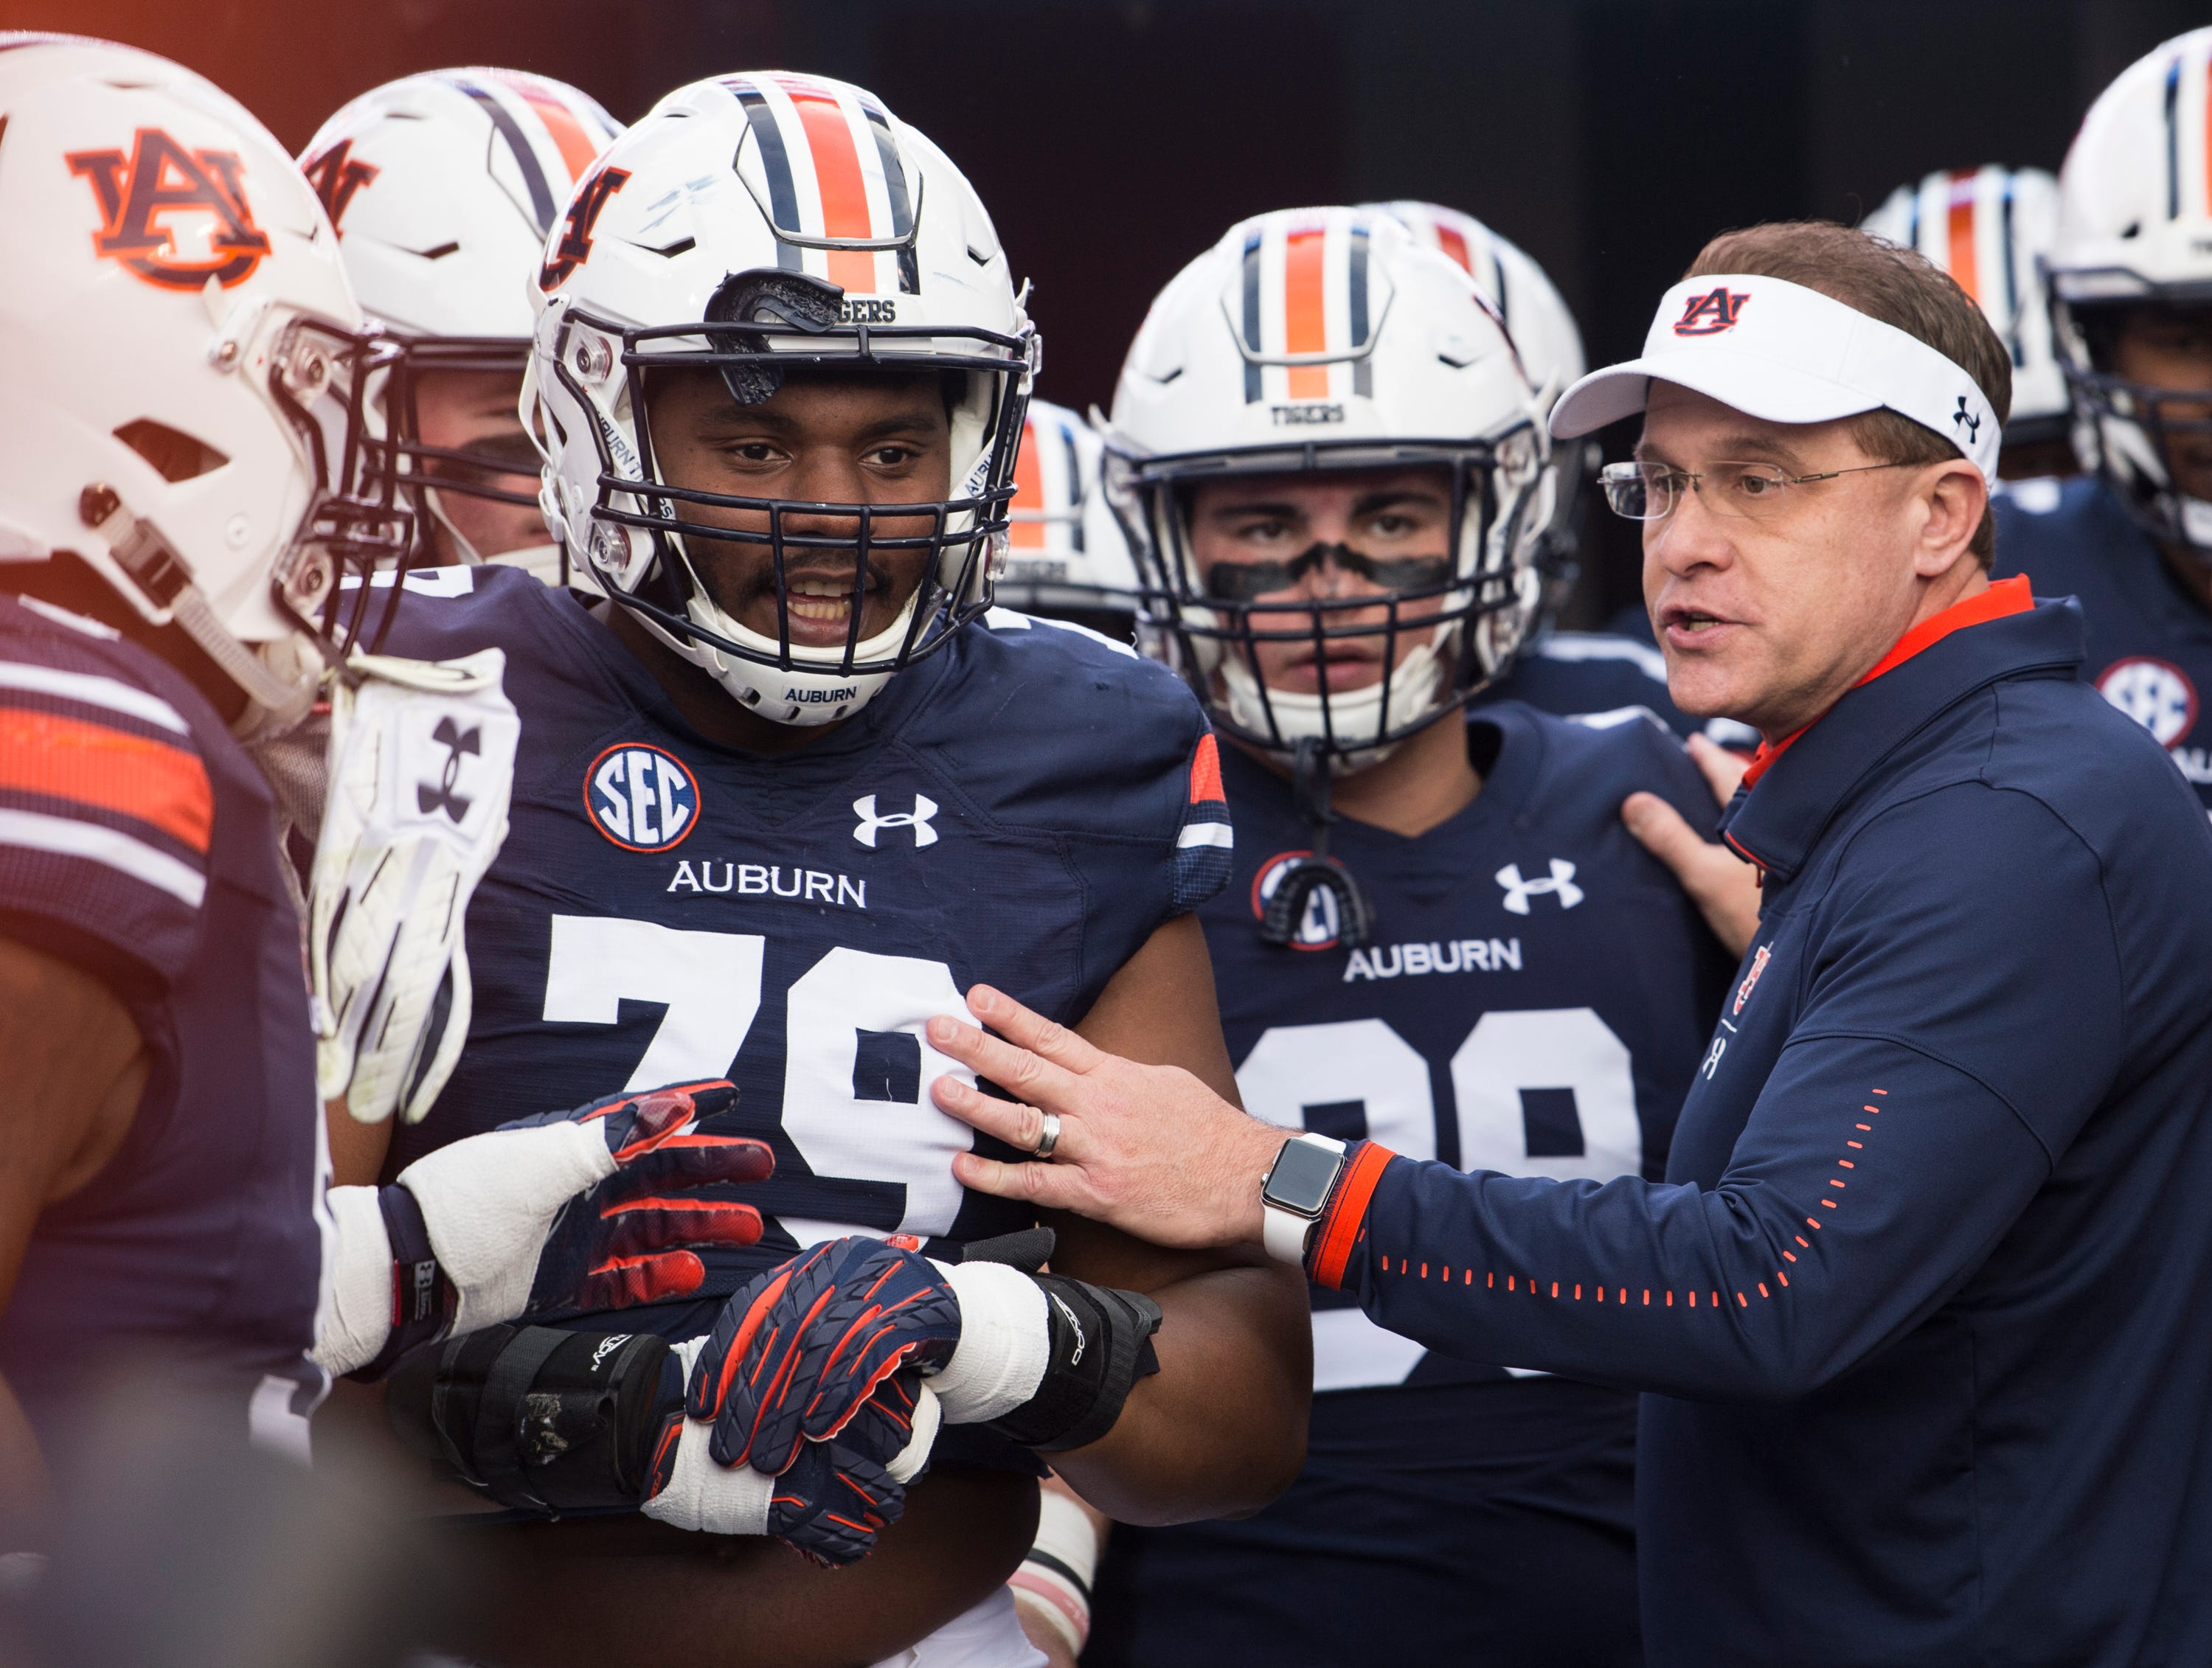 Auburn head coach Gus Malzahn talks with his players, led by senior defensive tackle Andrew Williams (79), before they take the field at Jordan-Hare Stadium in Auburn, Ala., on Saturday, Nov.. 17, 2018.